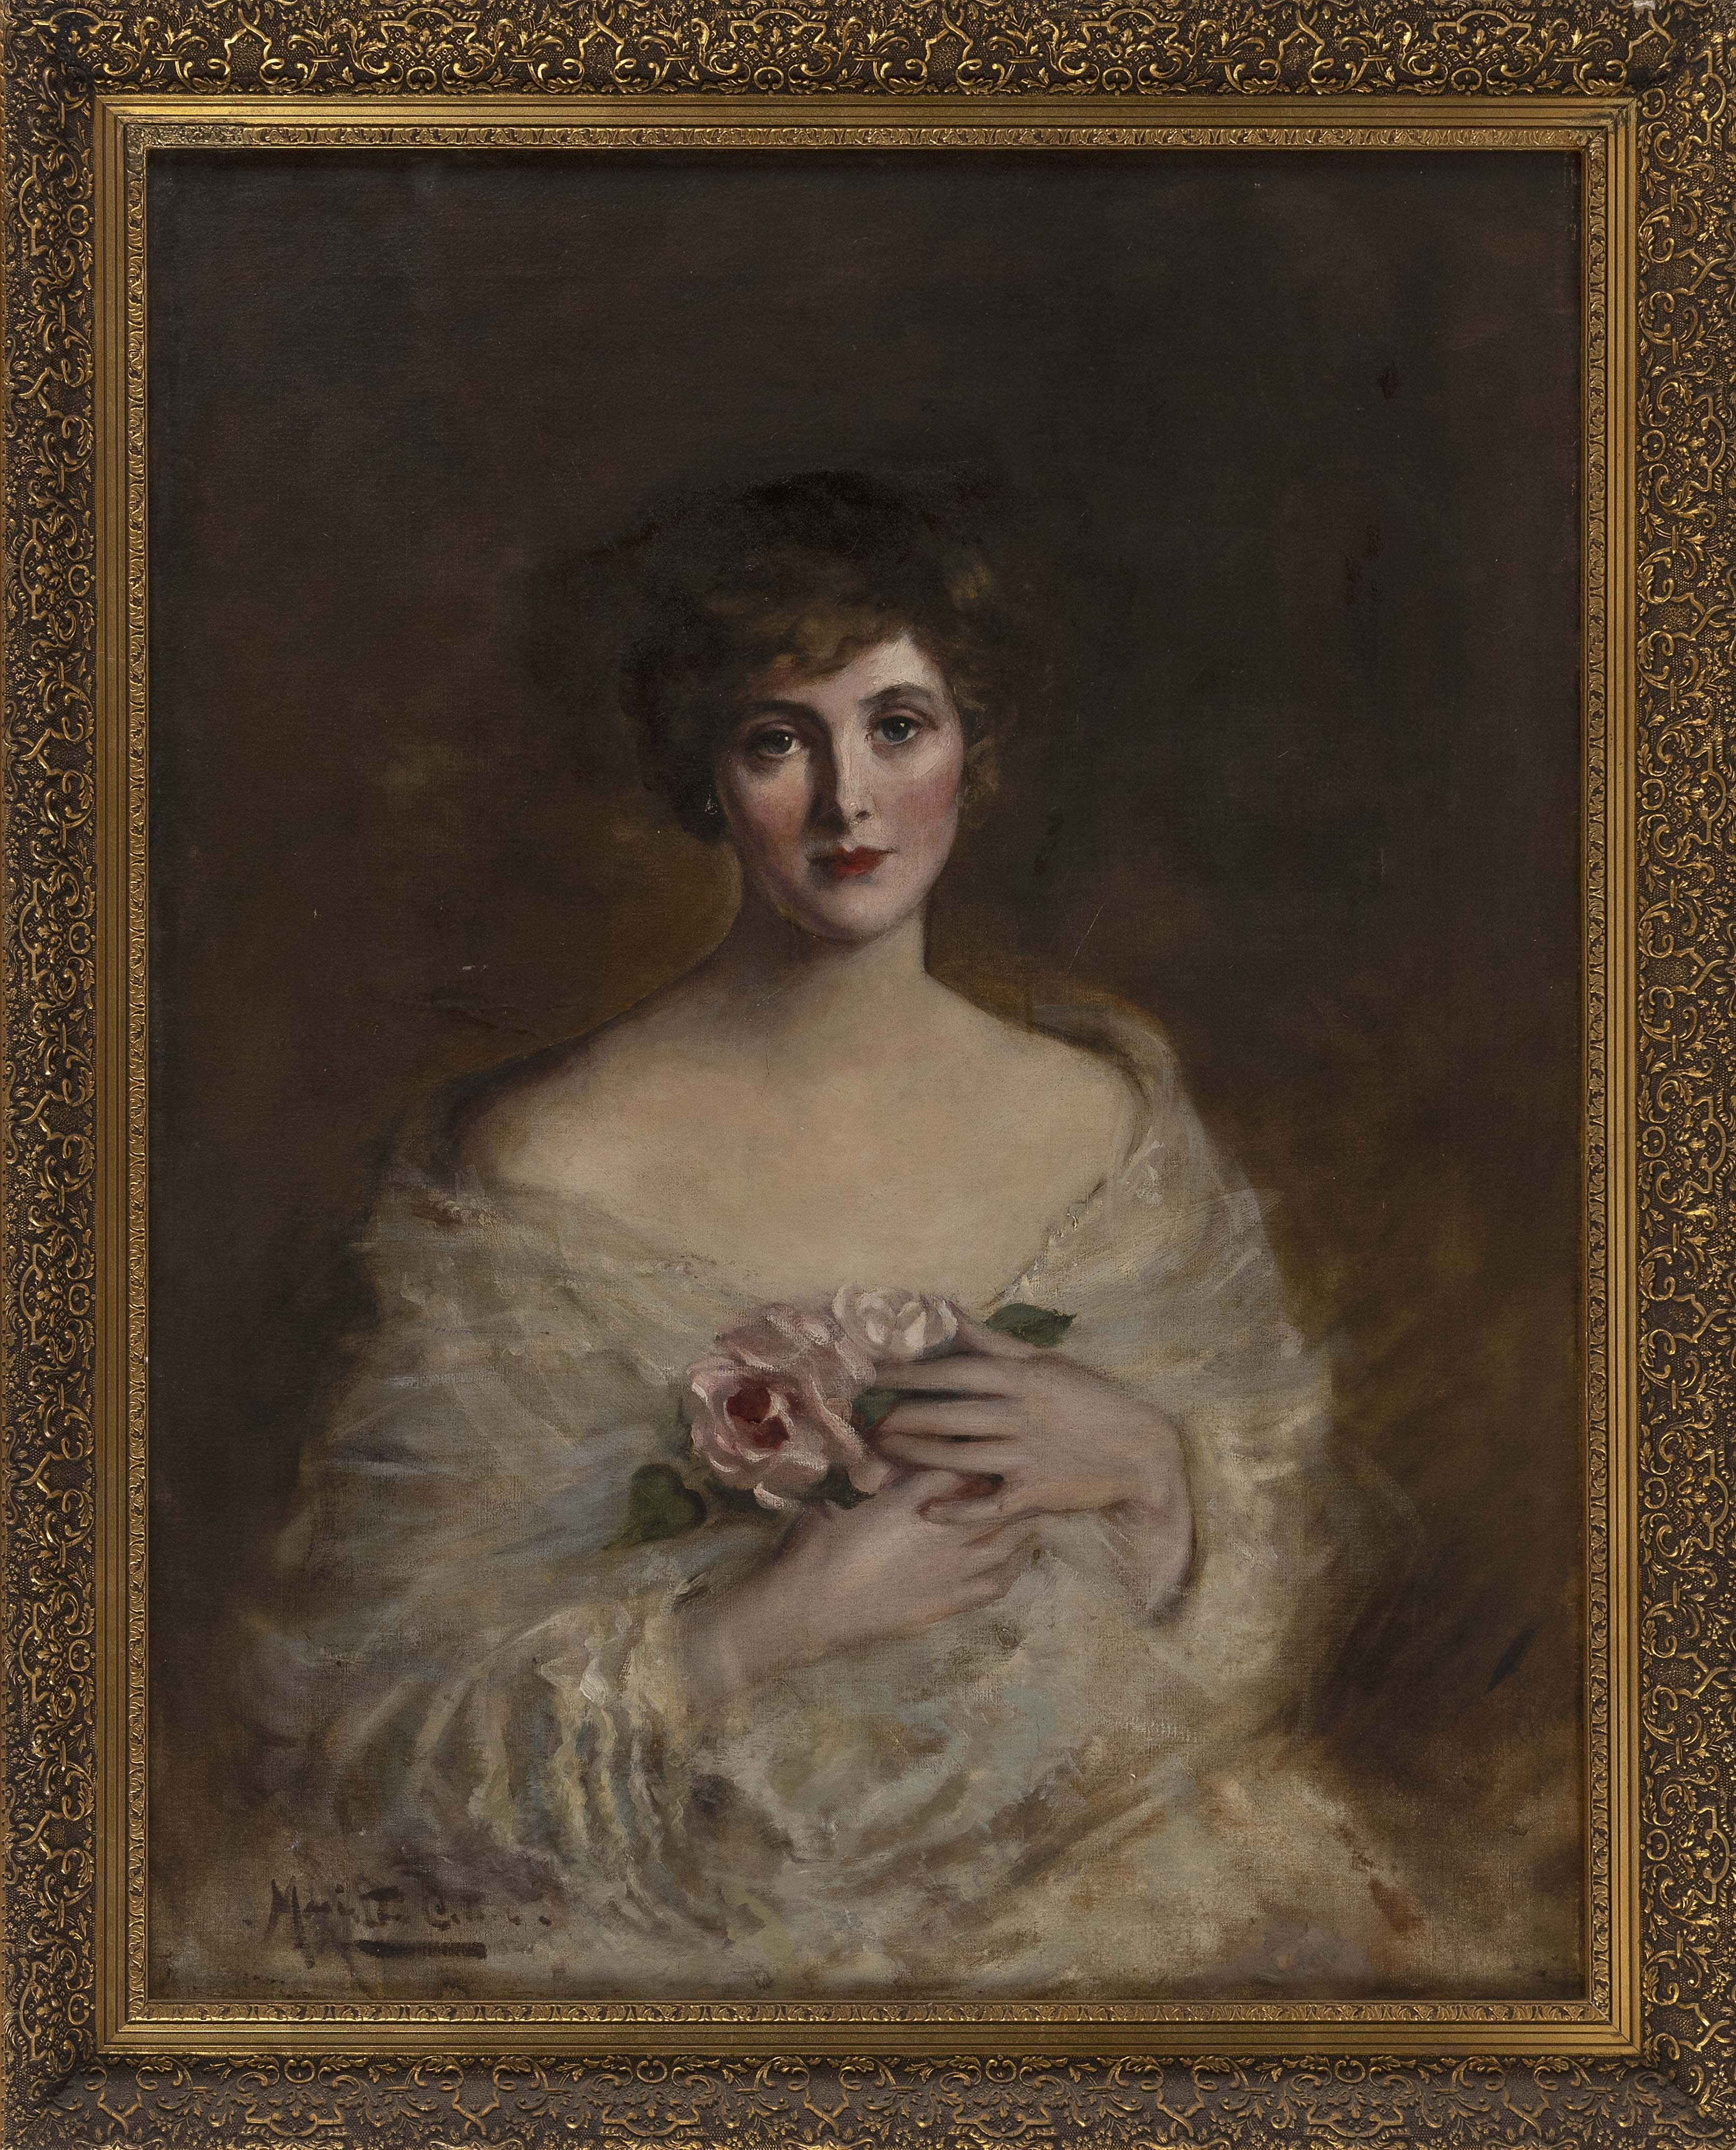 MARIETTA COTTON (New York, 1860-1926), Portrait of a young woman holding flowers., Oil on canvas, 36